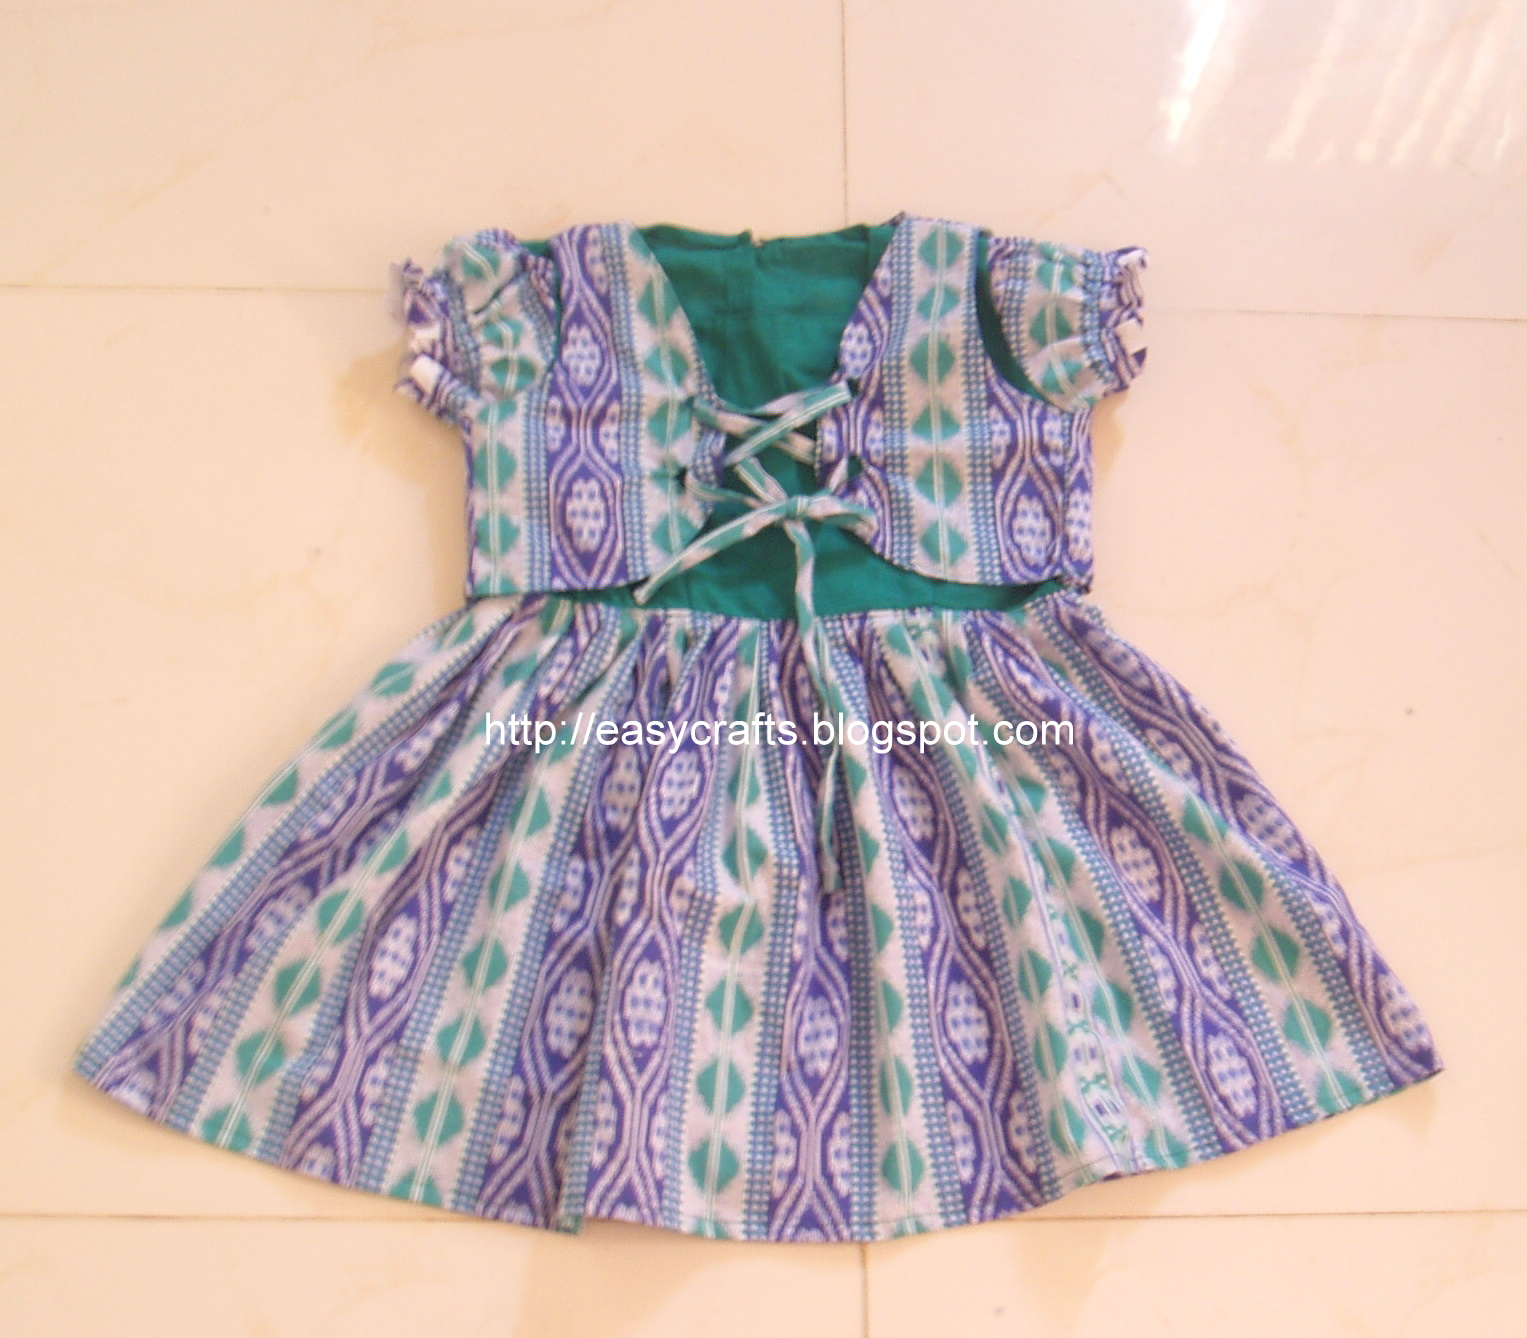 Baby Girls Frocks http://easycrafts.blogspot.com/2011/05/girl-baby-dress-with-coat.html